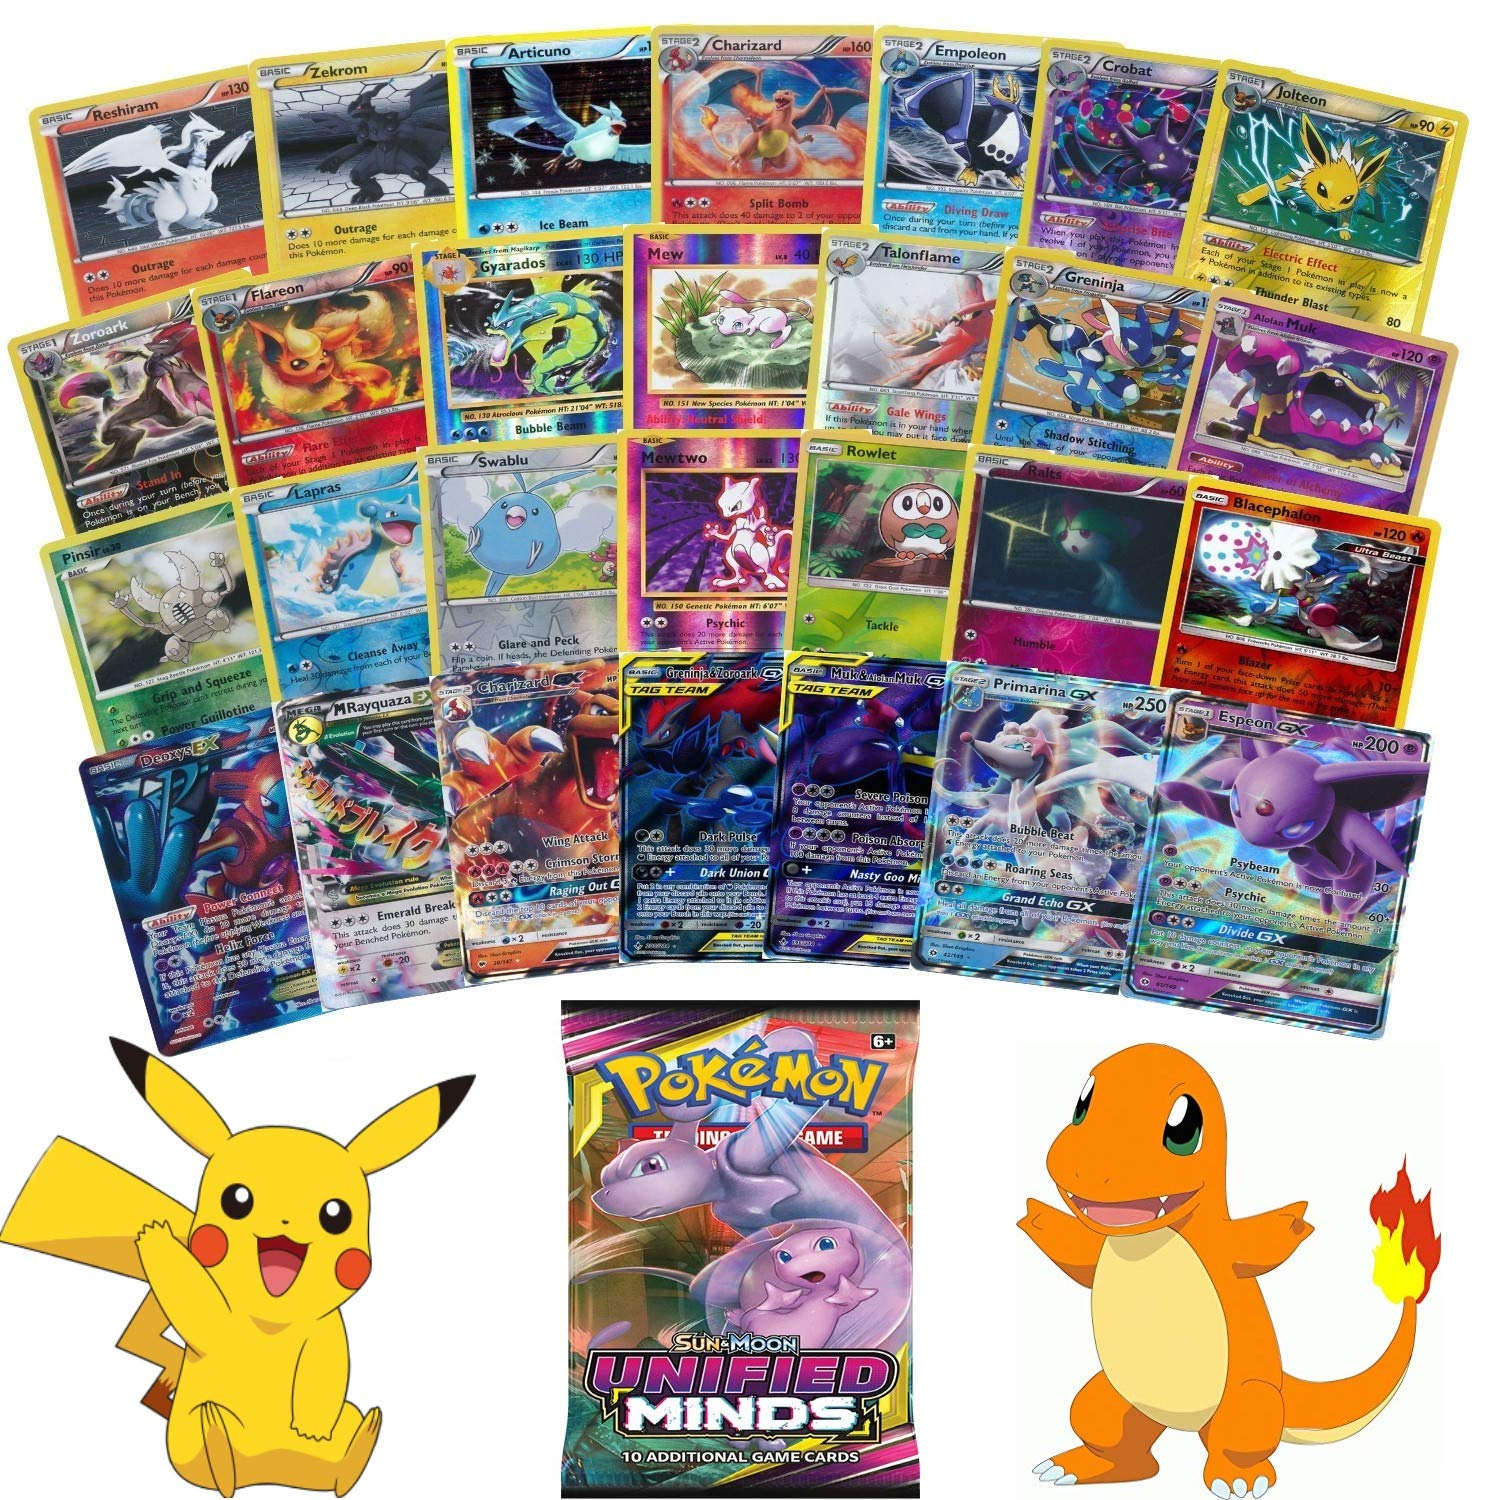 20 Pokemon Cards All Holo with One Guaranteed GX/EX Card Plus One Sealed Booster Pack! Exclusive JT Corp Pokemon Sticker Included! by JT Corp